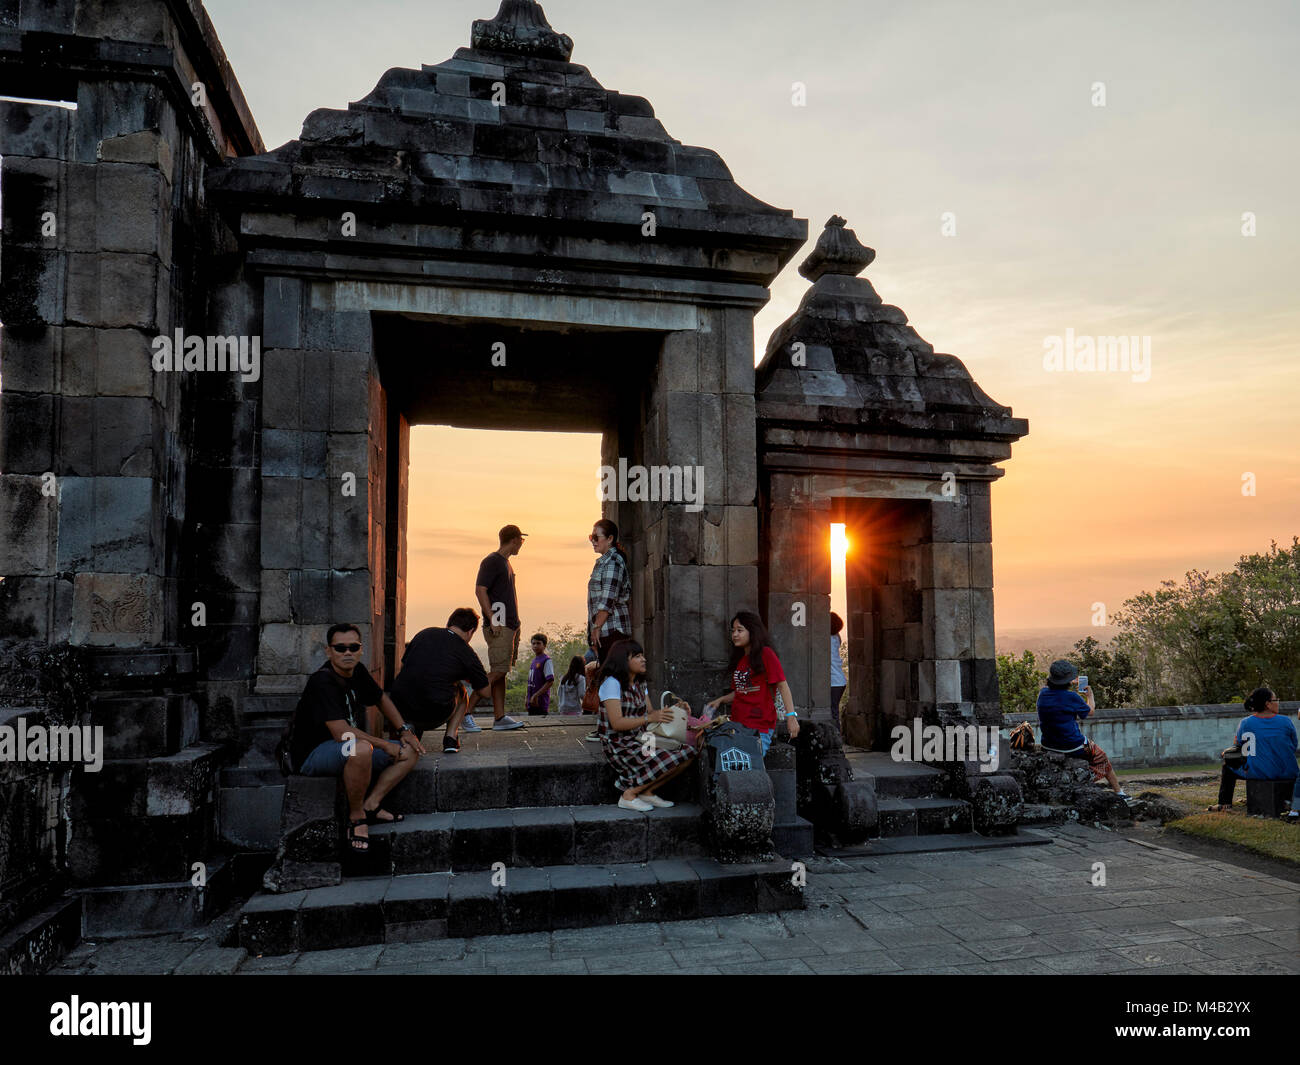 The main gate of Ratu Boko Palace compound at sunset. Special Region of Yogyakarta, Java, Indonesia. - Stock Image